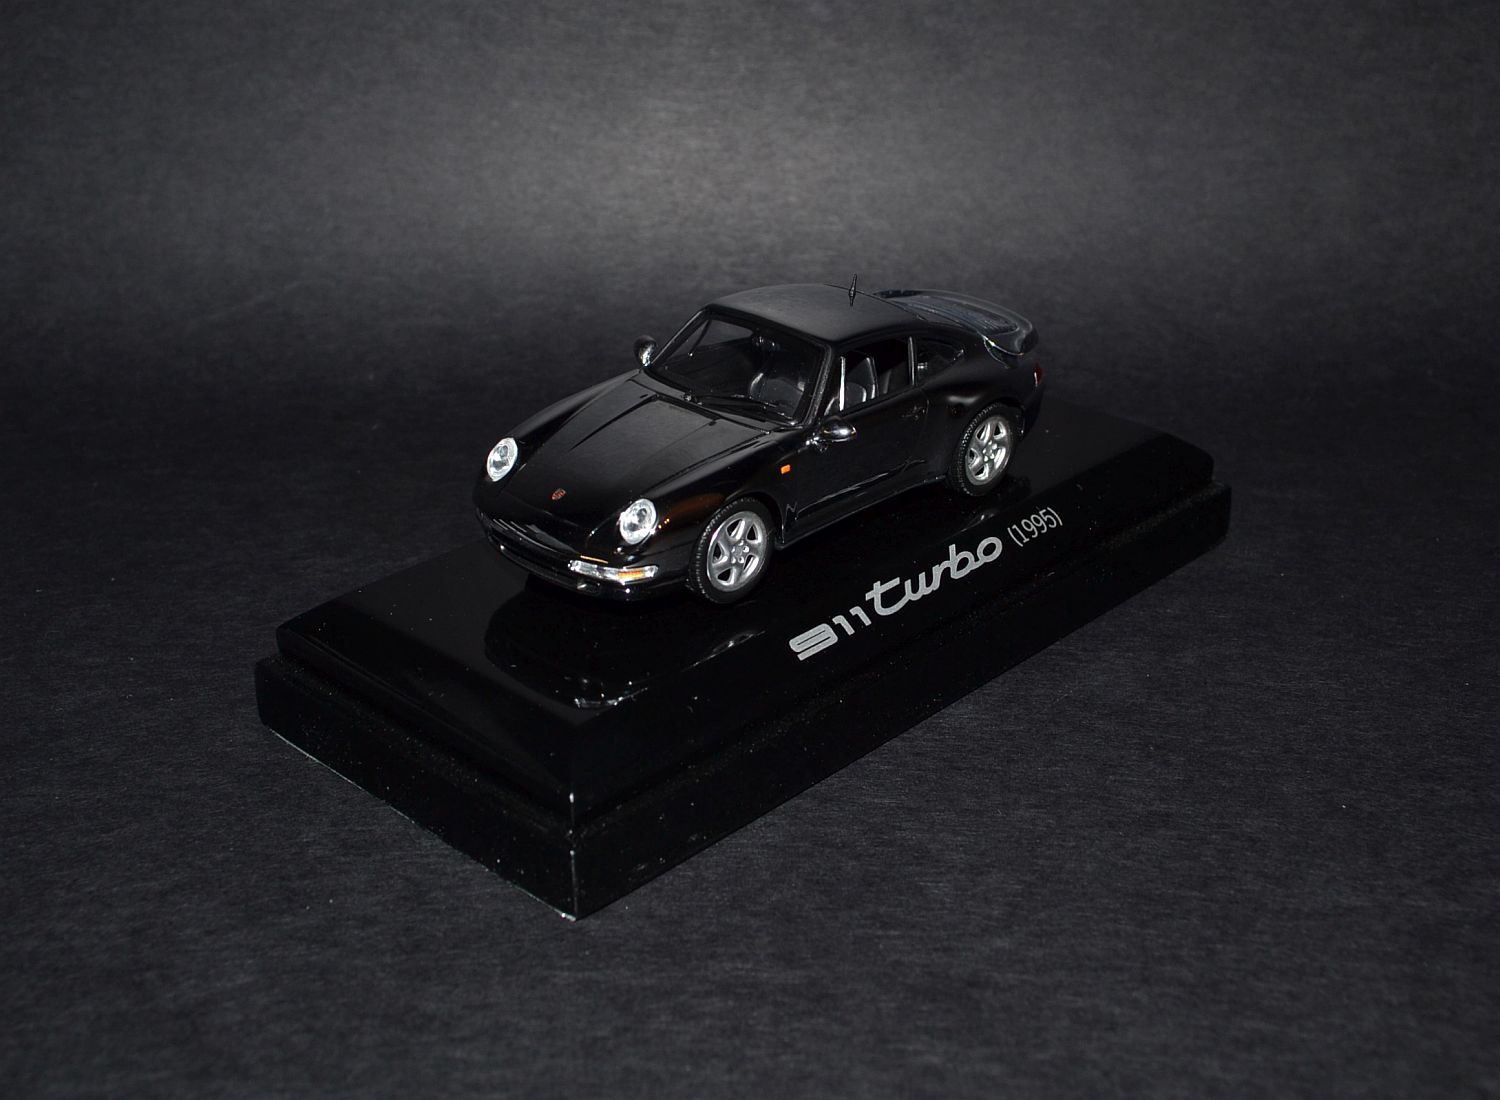 Porsche Chrom Minichamps part one